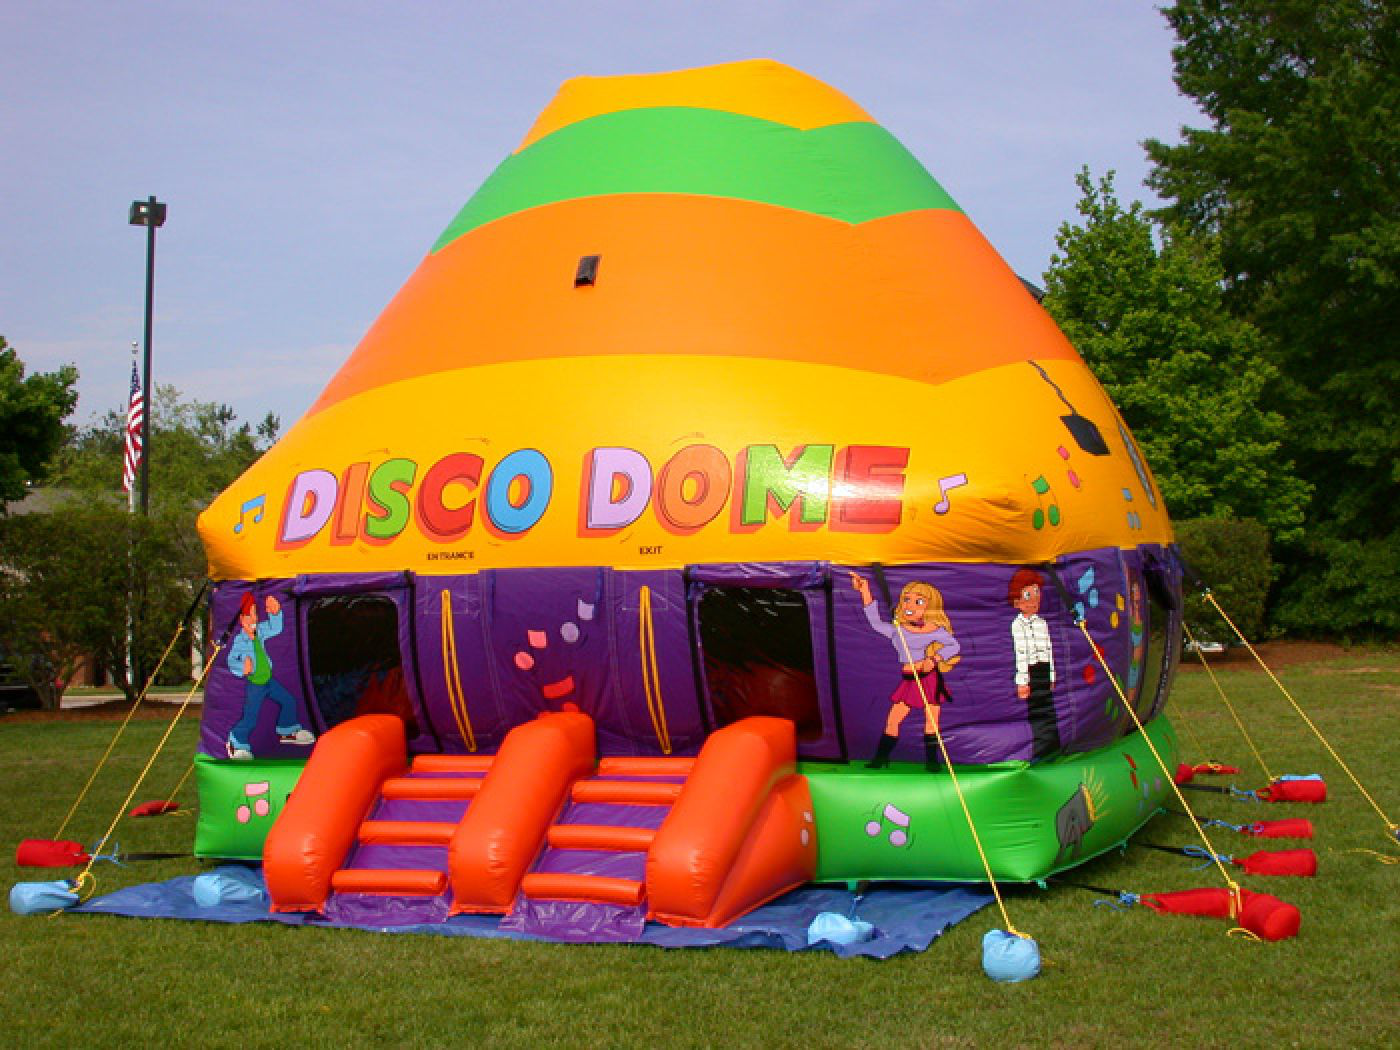 Rainbow Disco Dome Inflatables